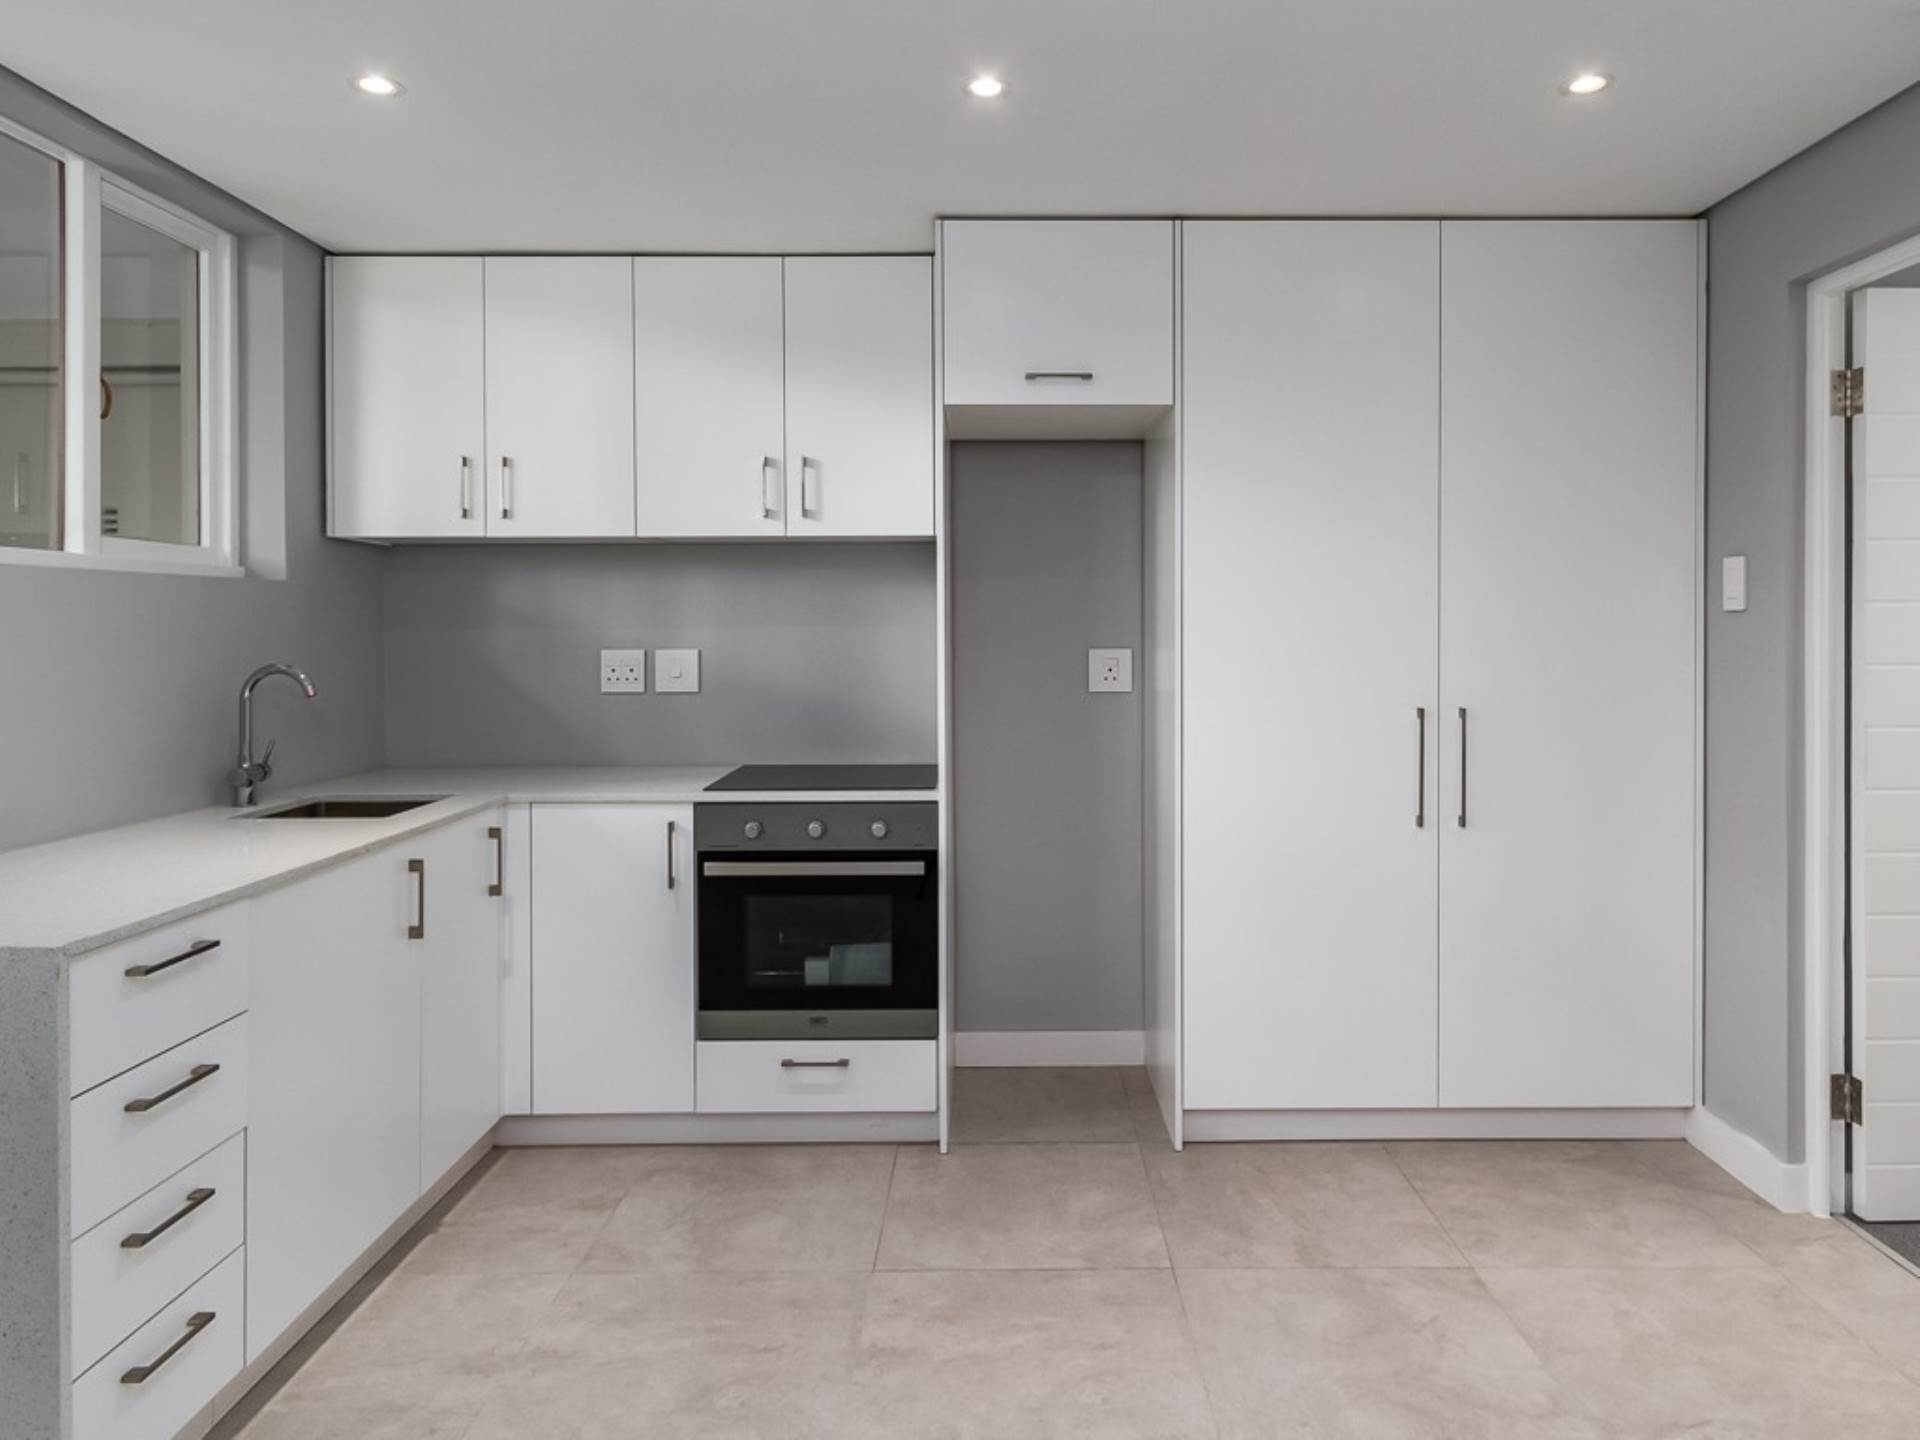 Apartment For Sale In Sea Point, Cape Town, Western Cape for